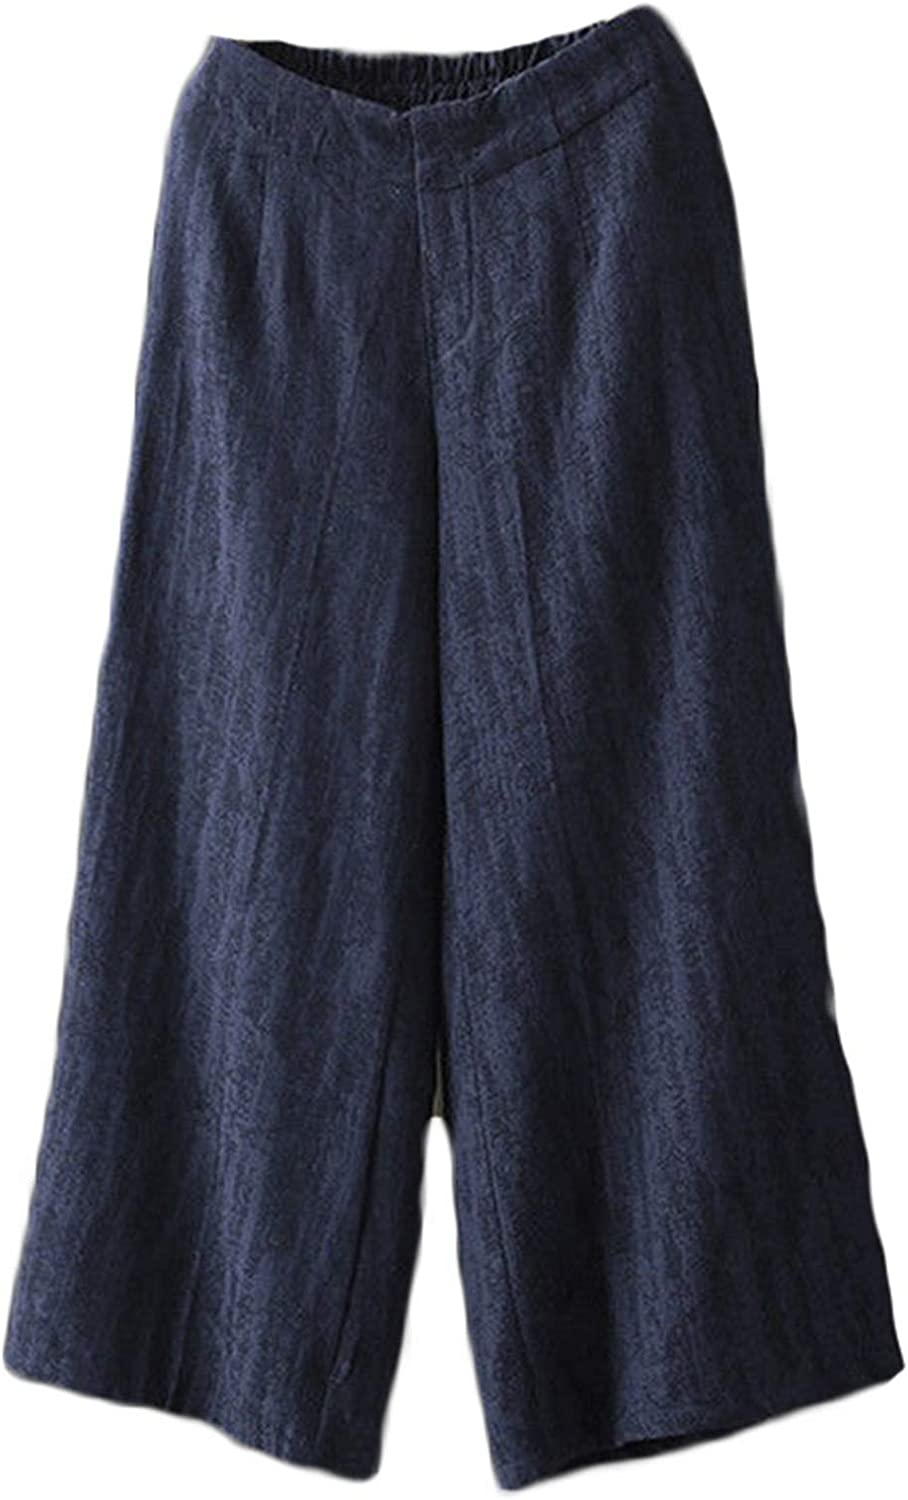 Andongnywell Women's Solid Color Casual Linen Wide Leg Pants Looses Elastic Waisted Palazzo Trousers